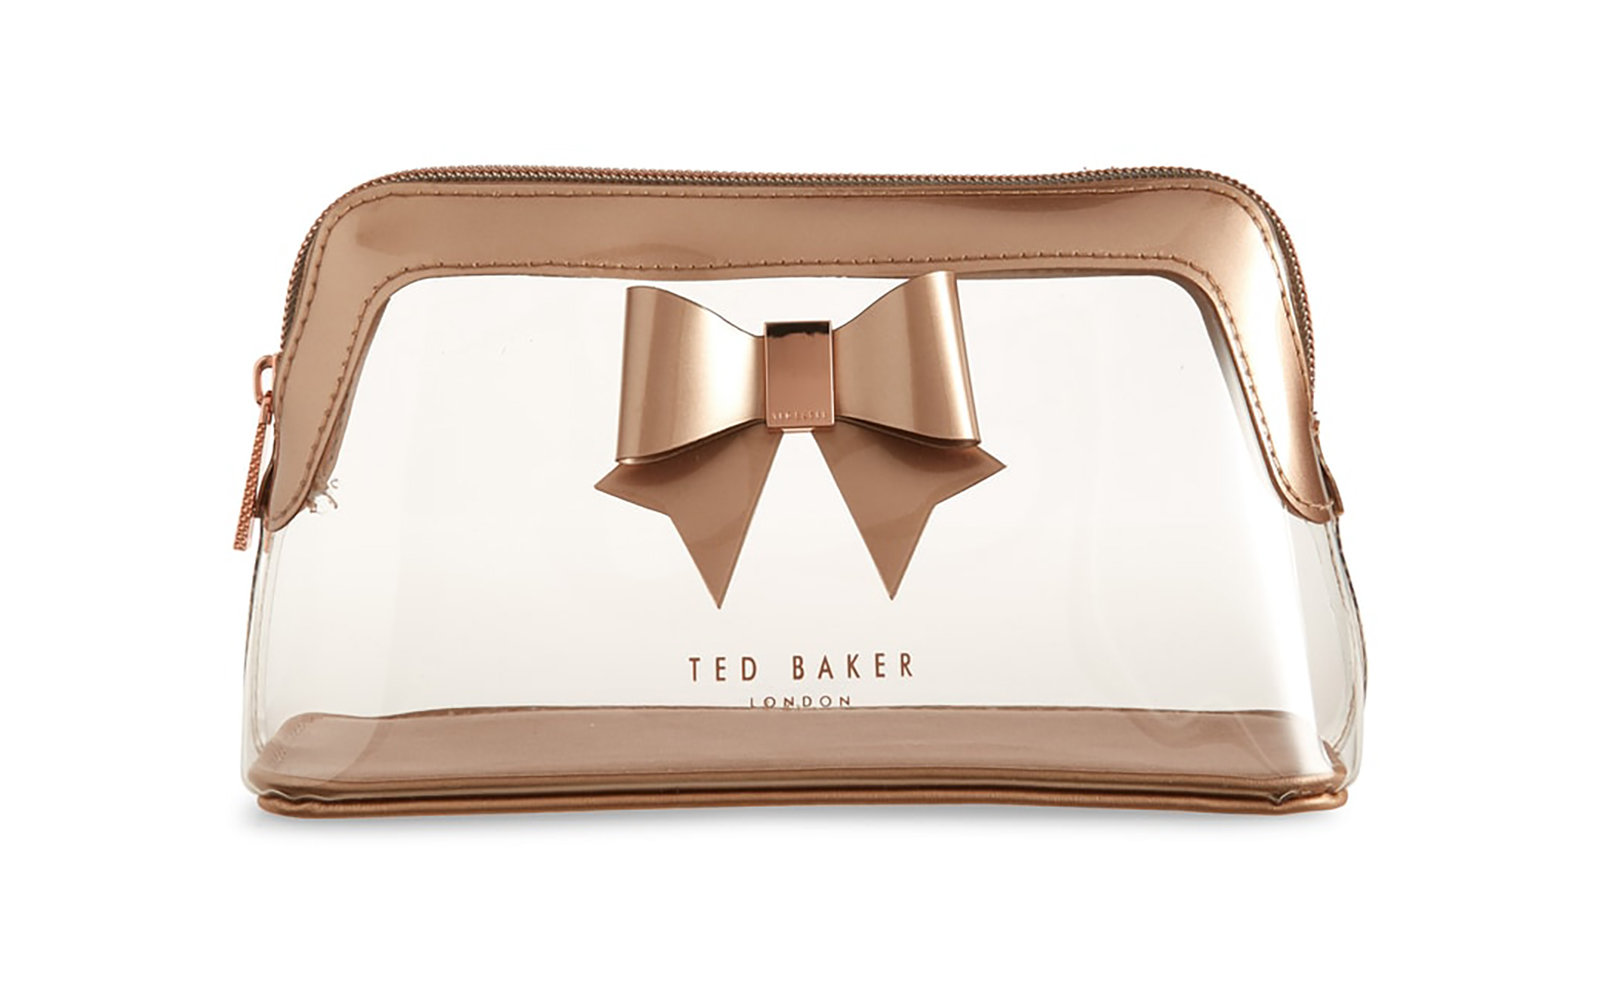 317c0e3f0424 The Best Clear Travel Makeup Bags   Cosmetics Cases